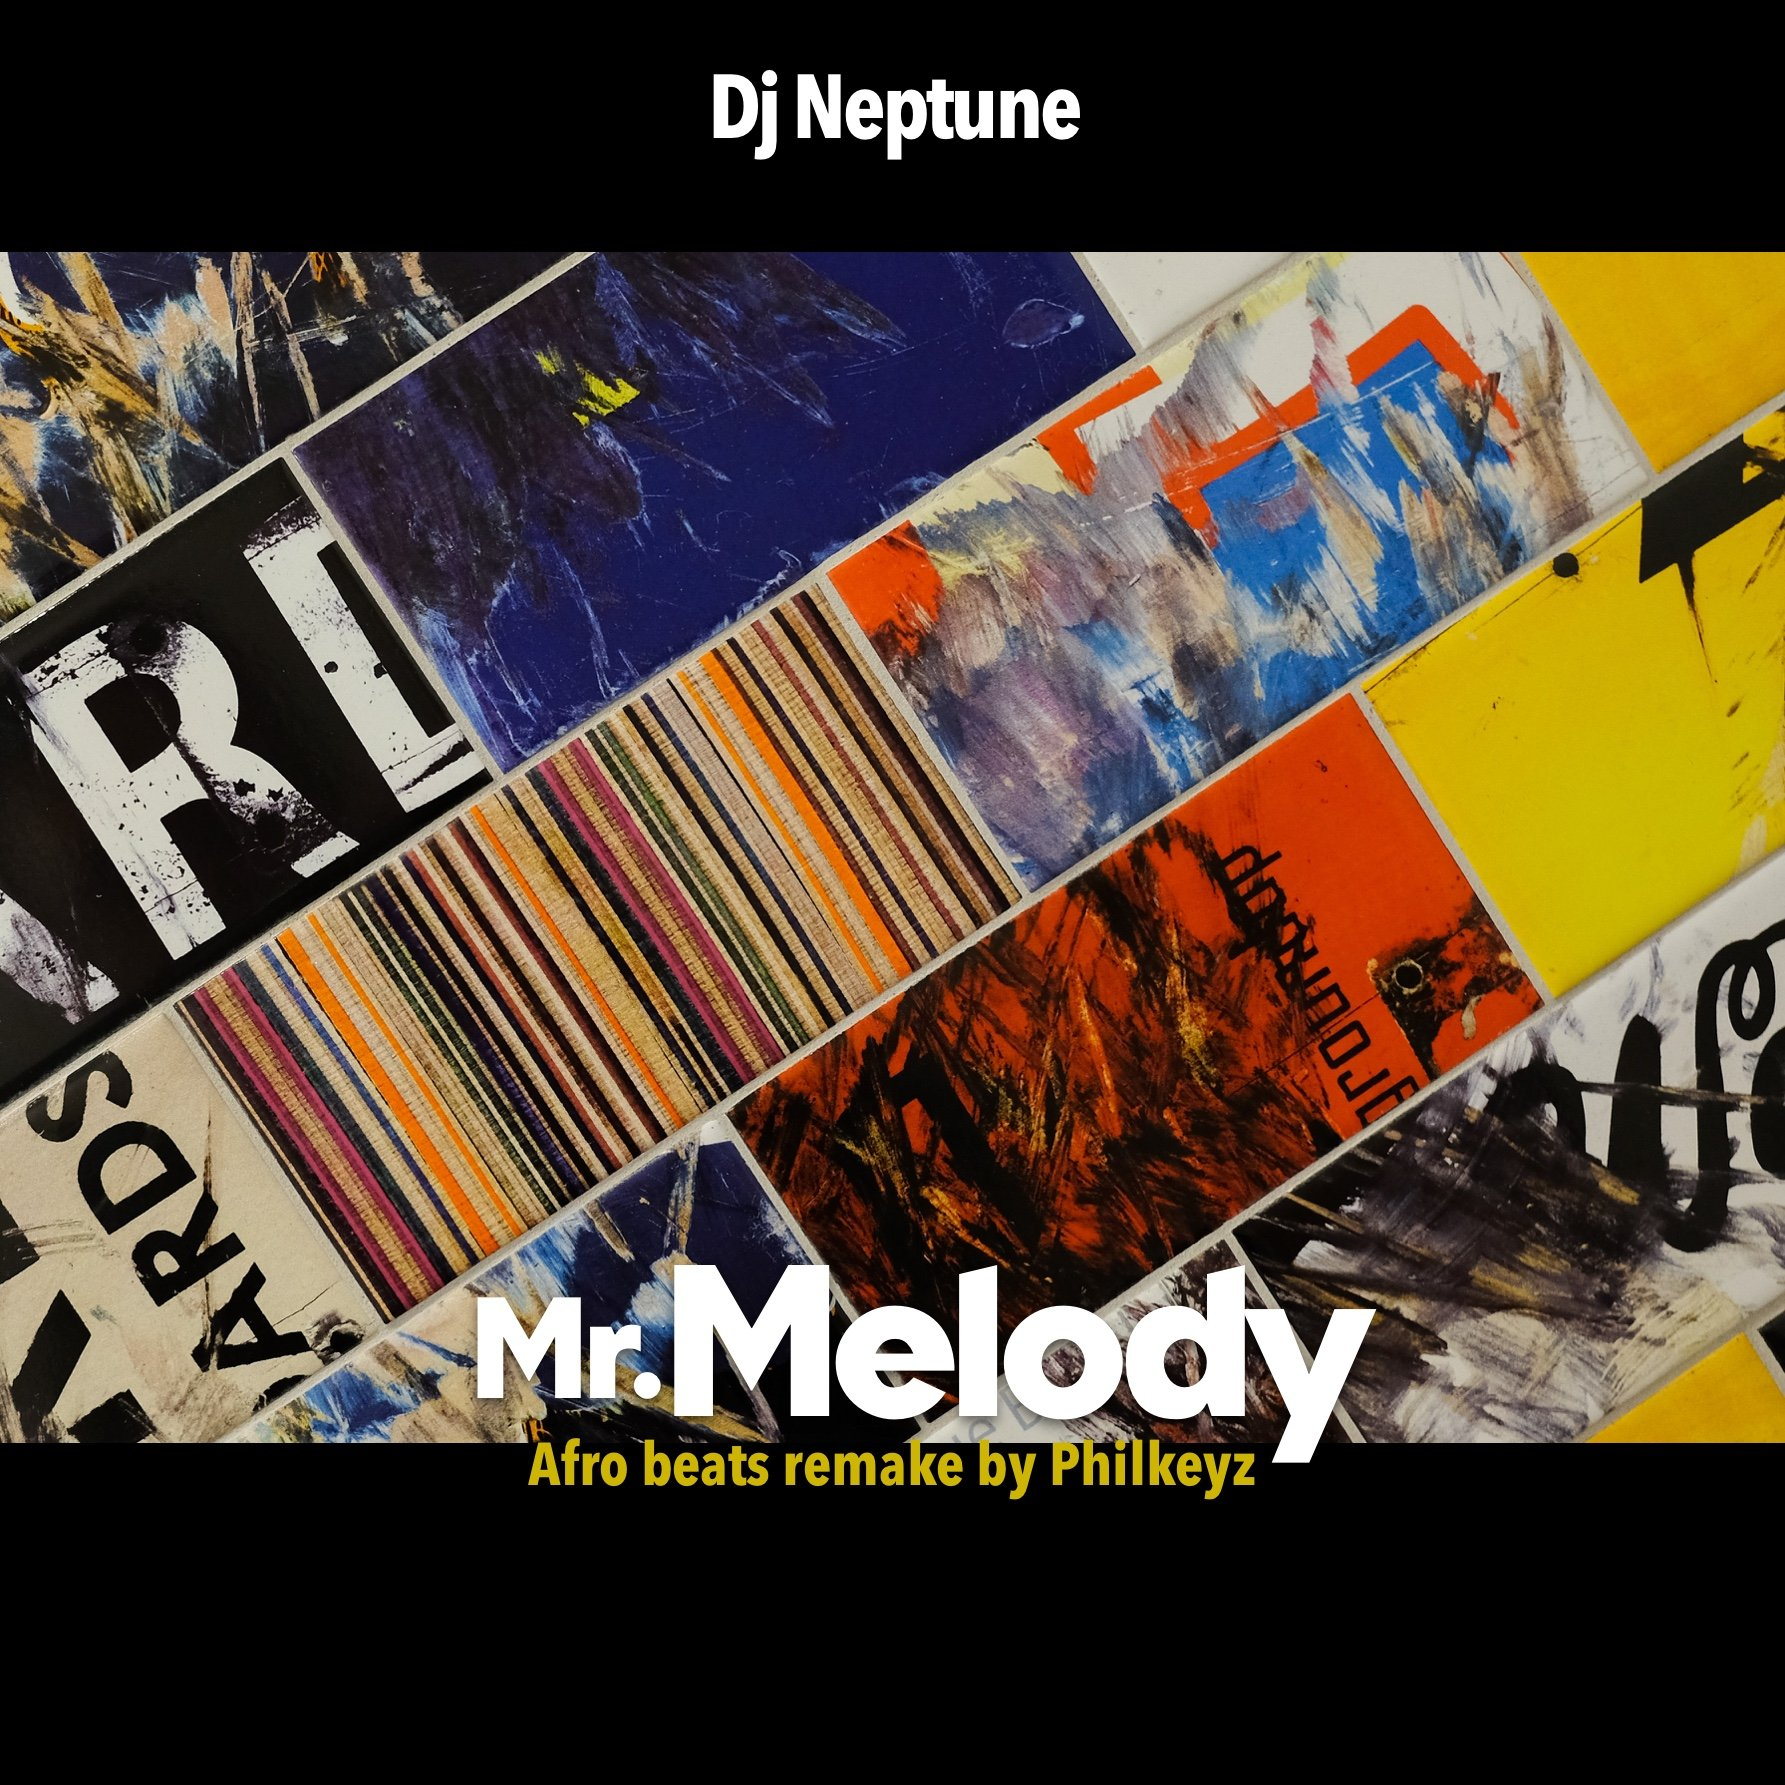 Philkeyz X DJ Neptune - Mr. Melody (Afrobeats Remake)